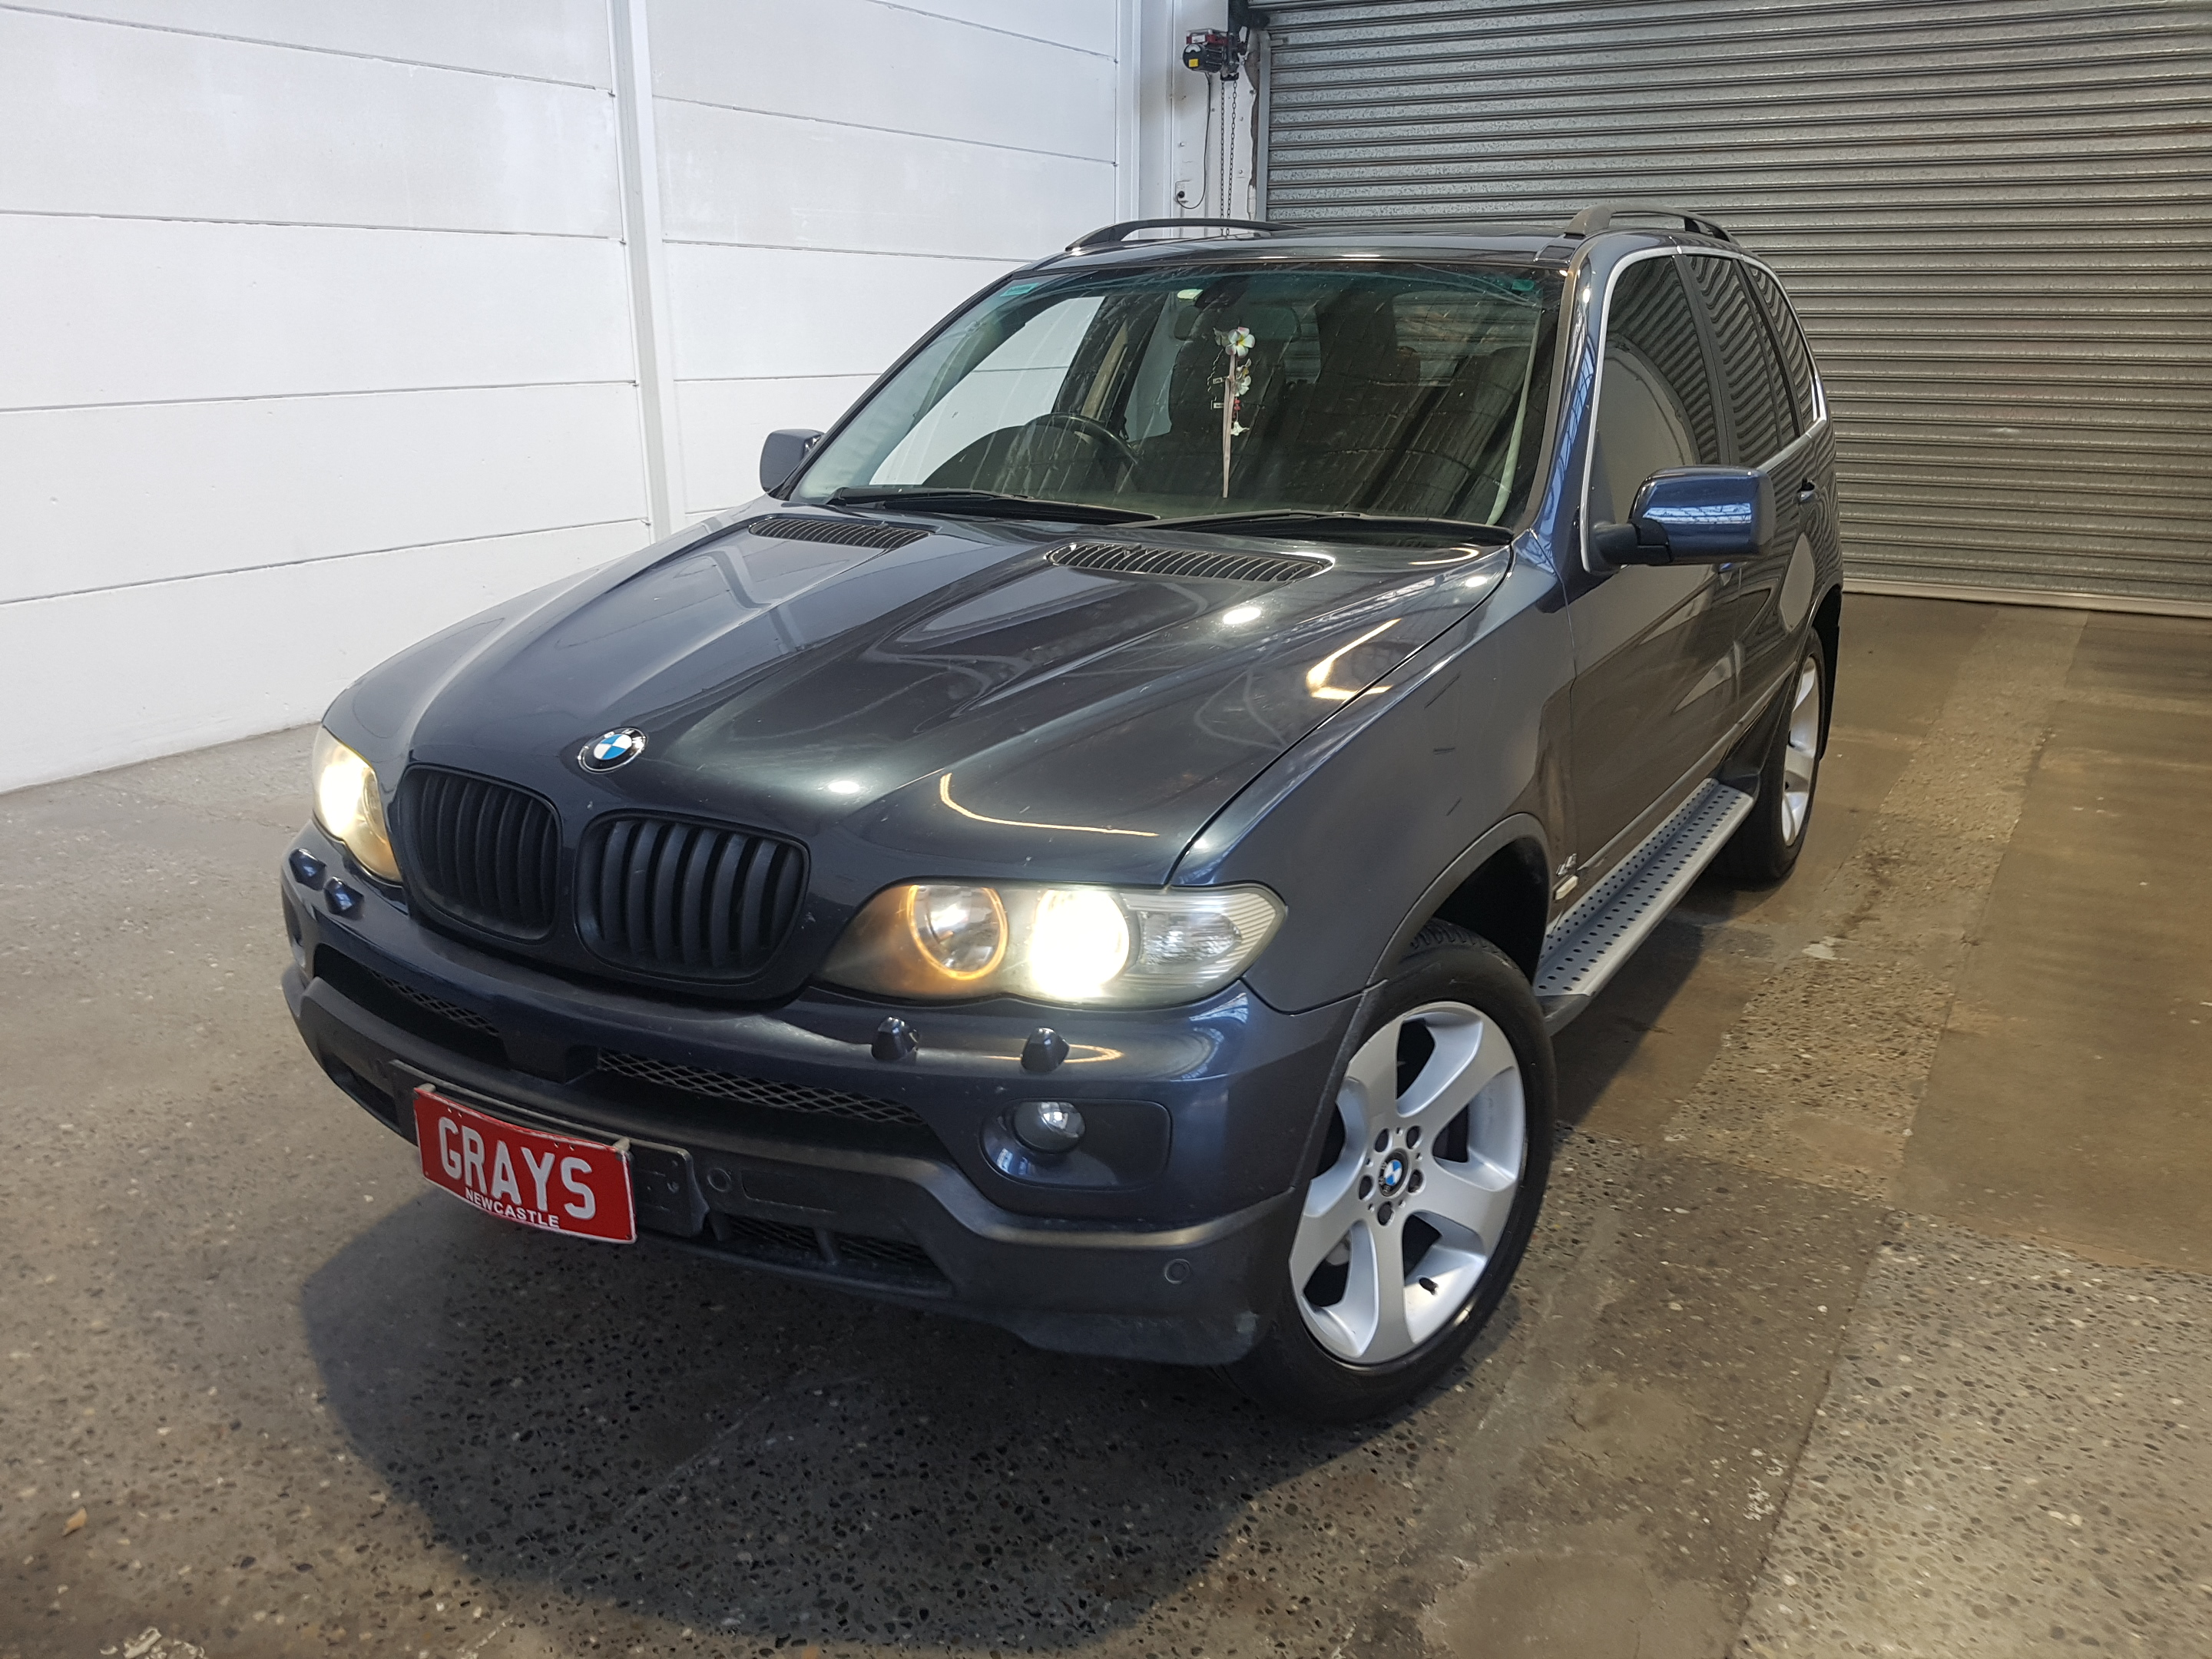 BMW X5 4.4i E53 Automatic Wagon